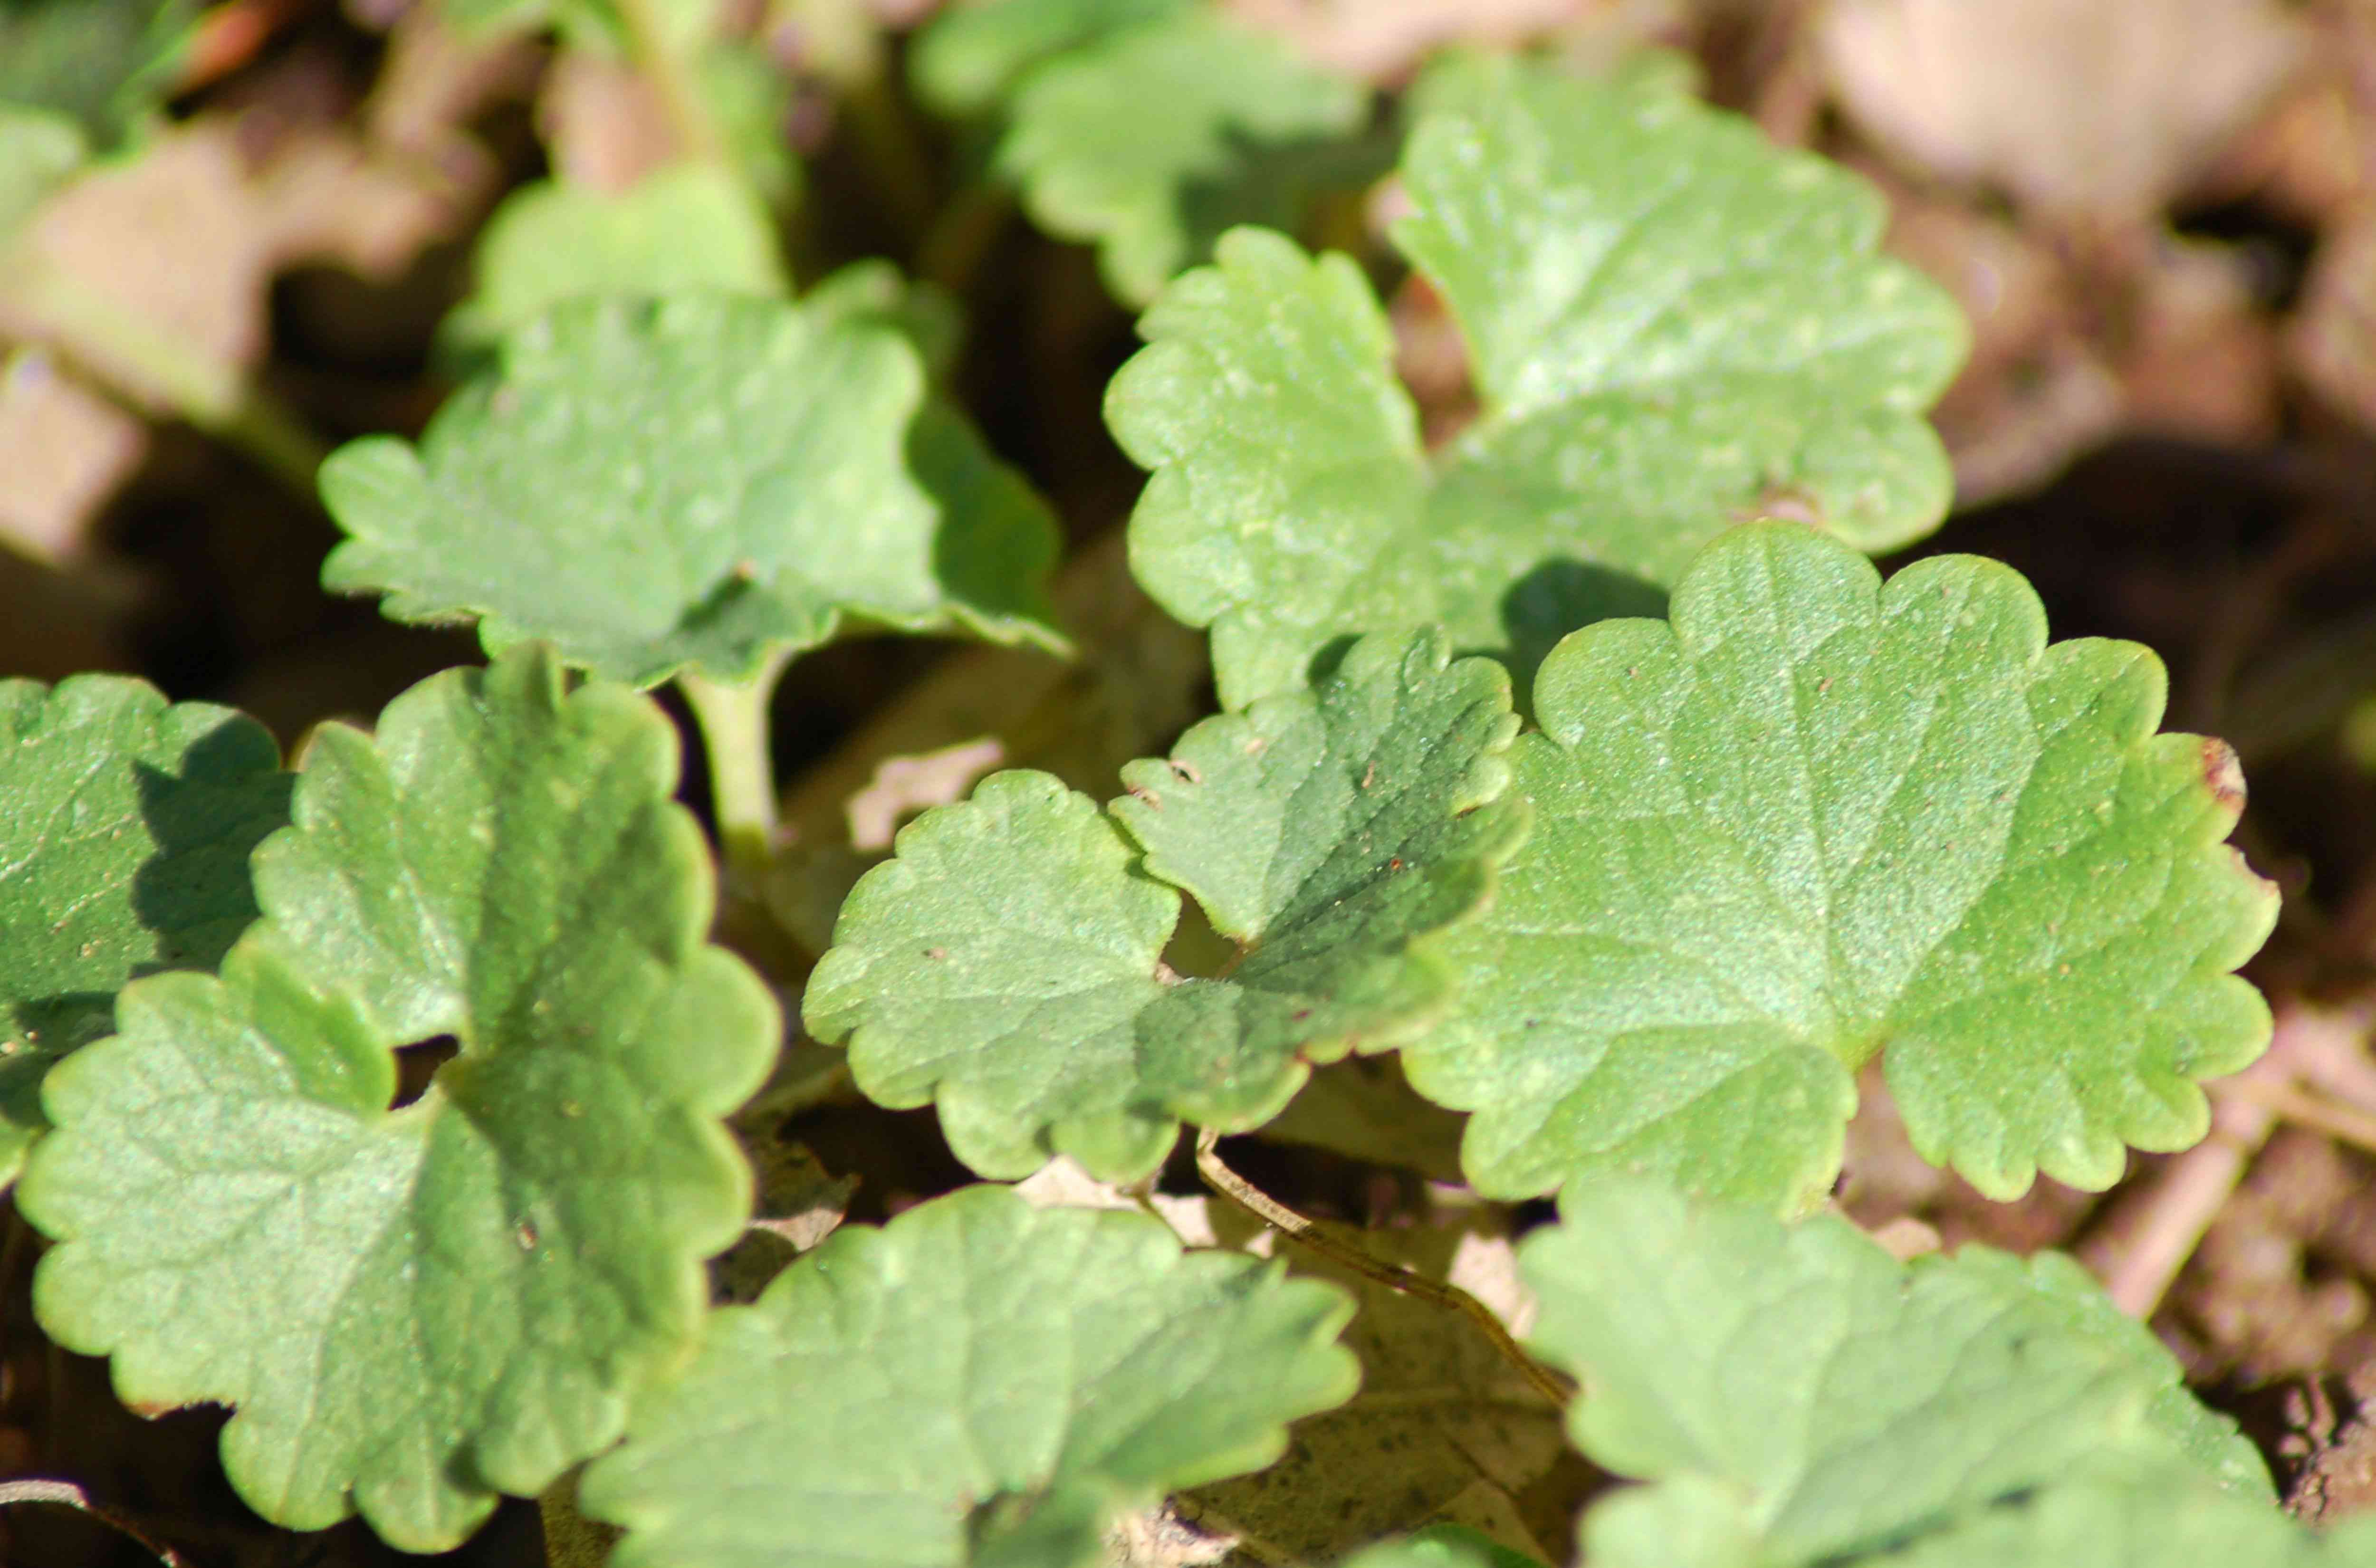 Ground ivy weed with small clover-like leaves in sunlight closeup